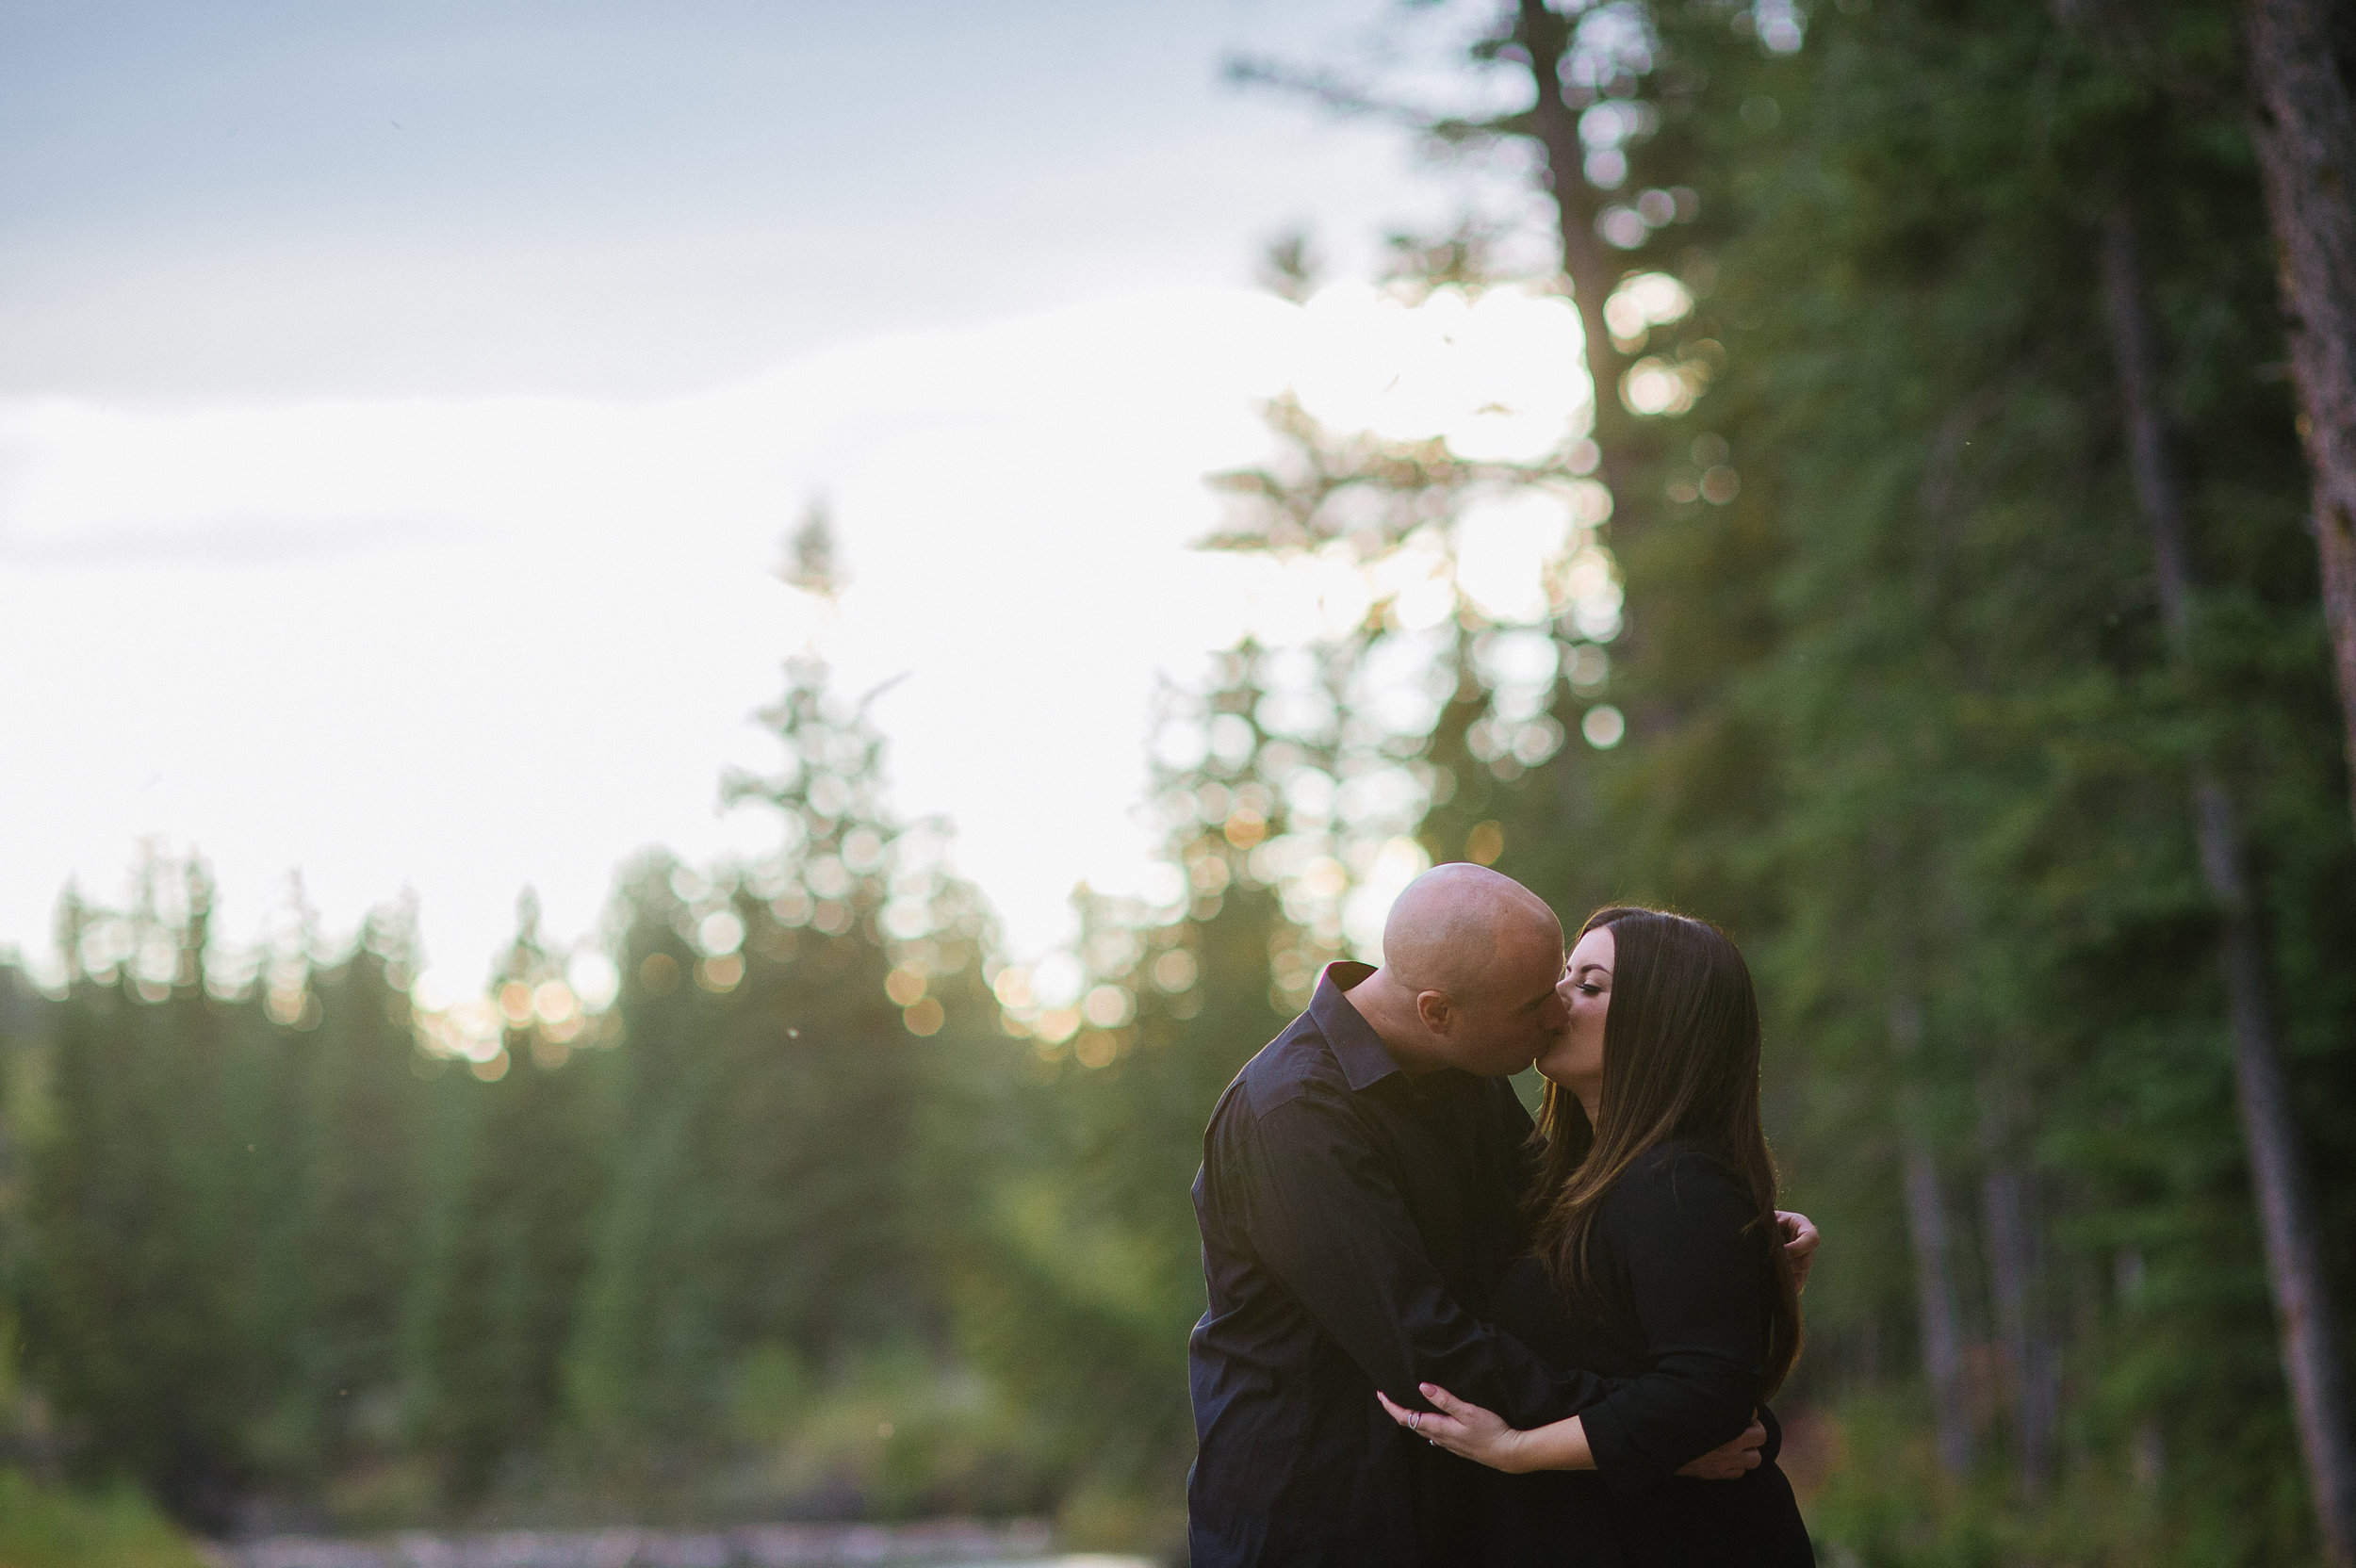 Calgary_Wedding_Photography_Cassandra_Derek_Engagements_2017_HR 0049.jpg